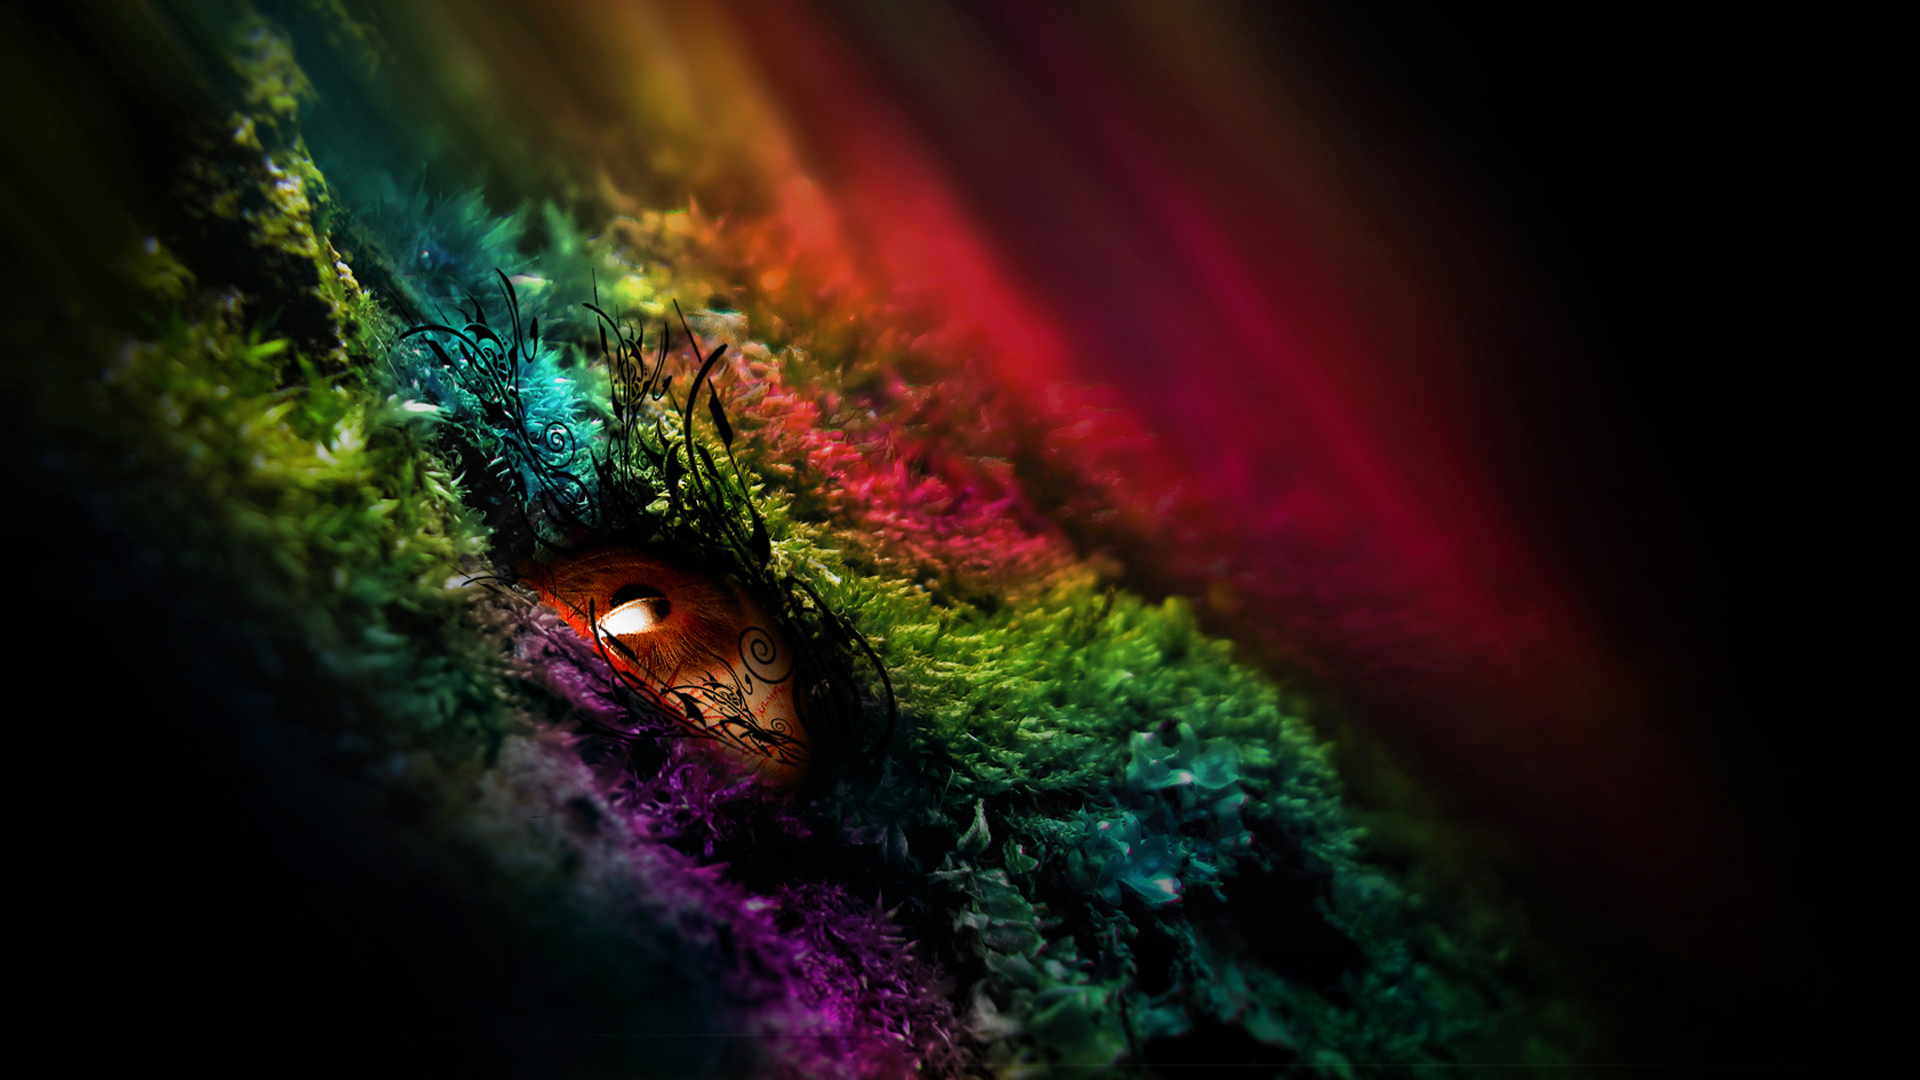 Hd wallpaper colour - Hd Wallpaper Colour 21